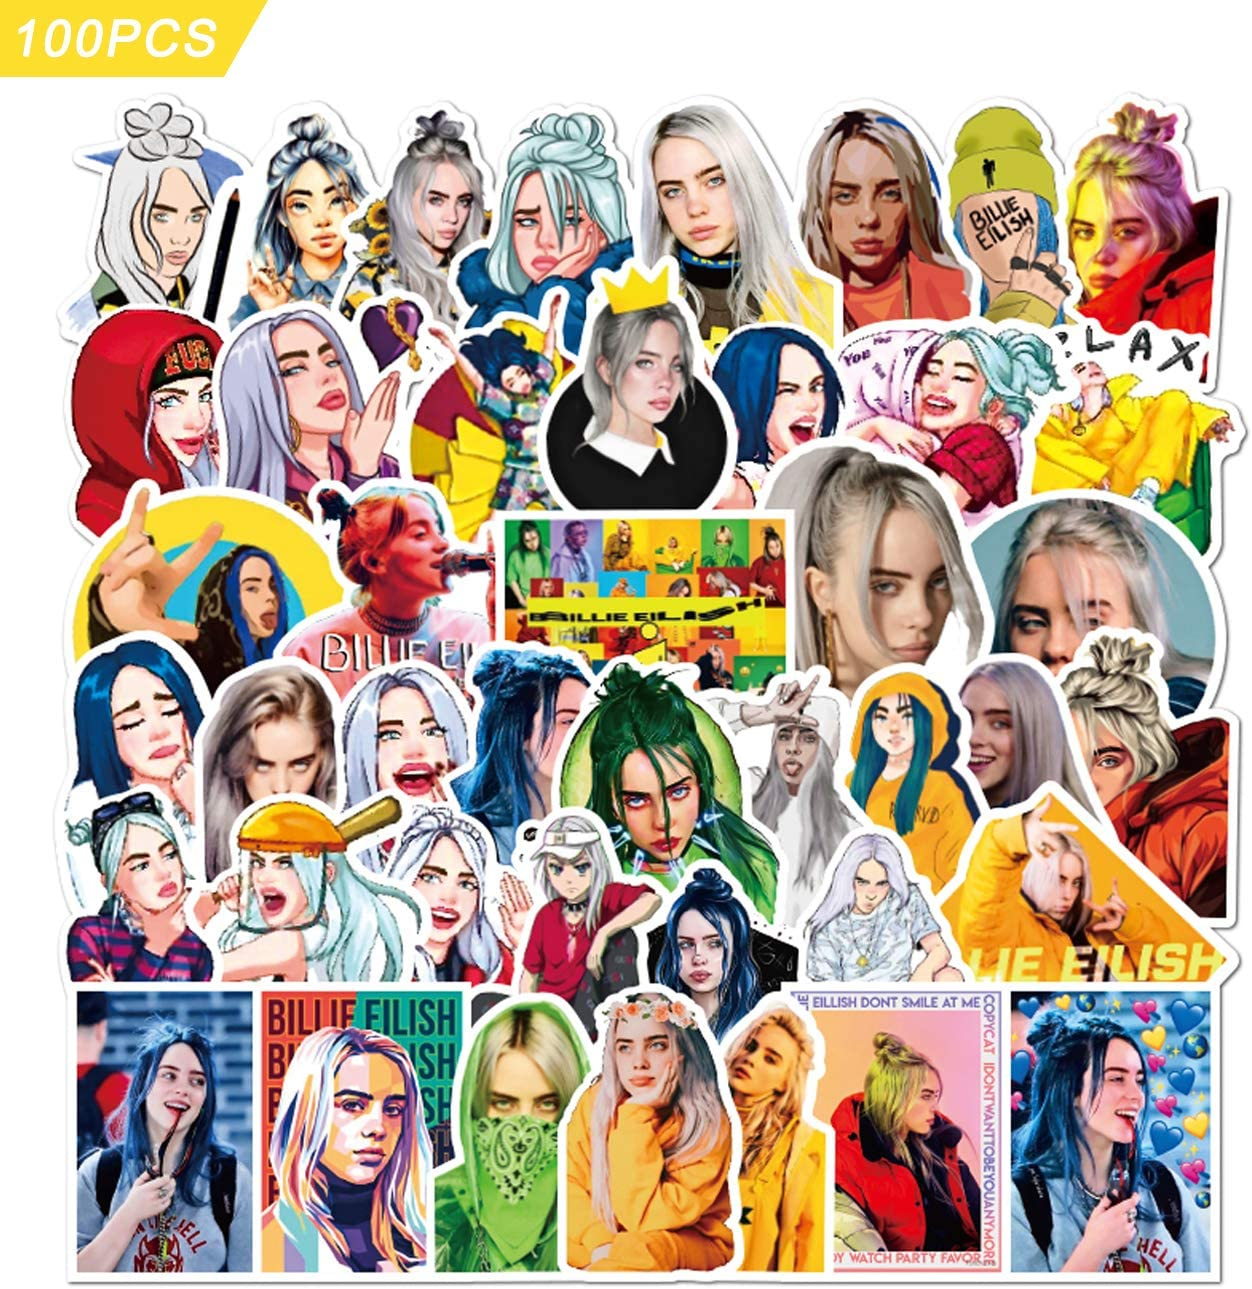 Billie Eilis_h Stickers Lnight 100 pcs Laptop Sticker Pack Vinyl Waterproof Stickers for Kids Adults Teens Luggage Car Computer Decals Stickers